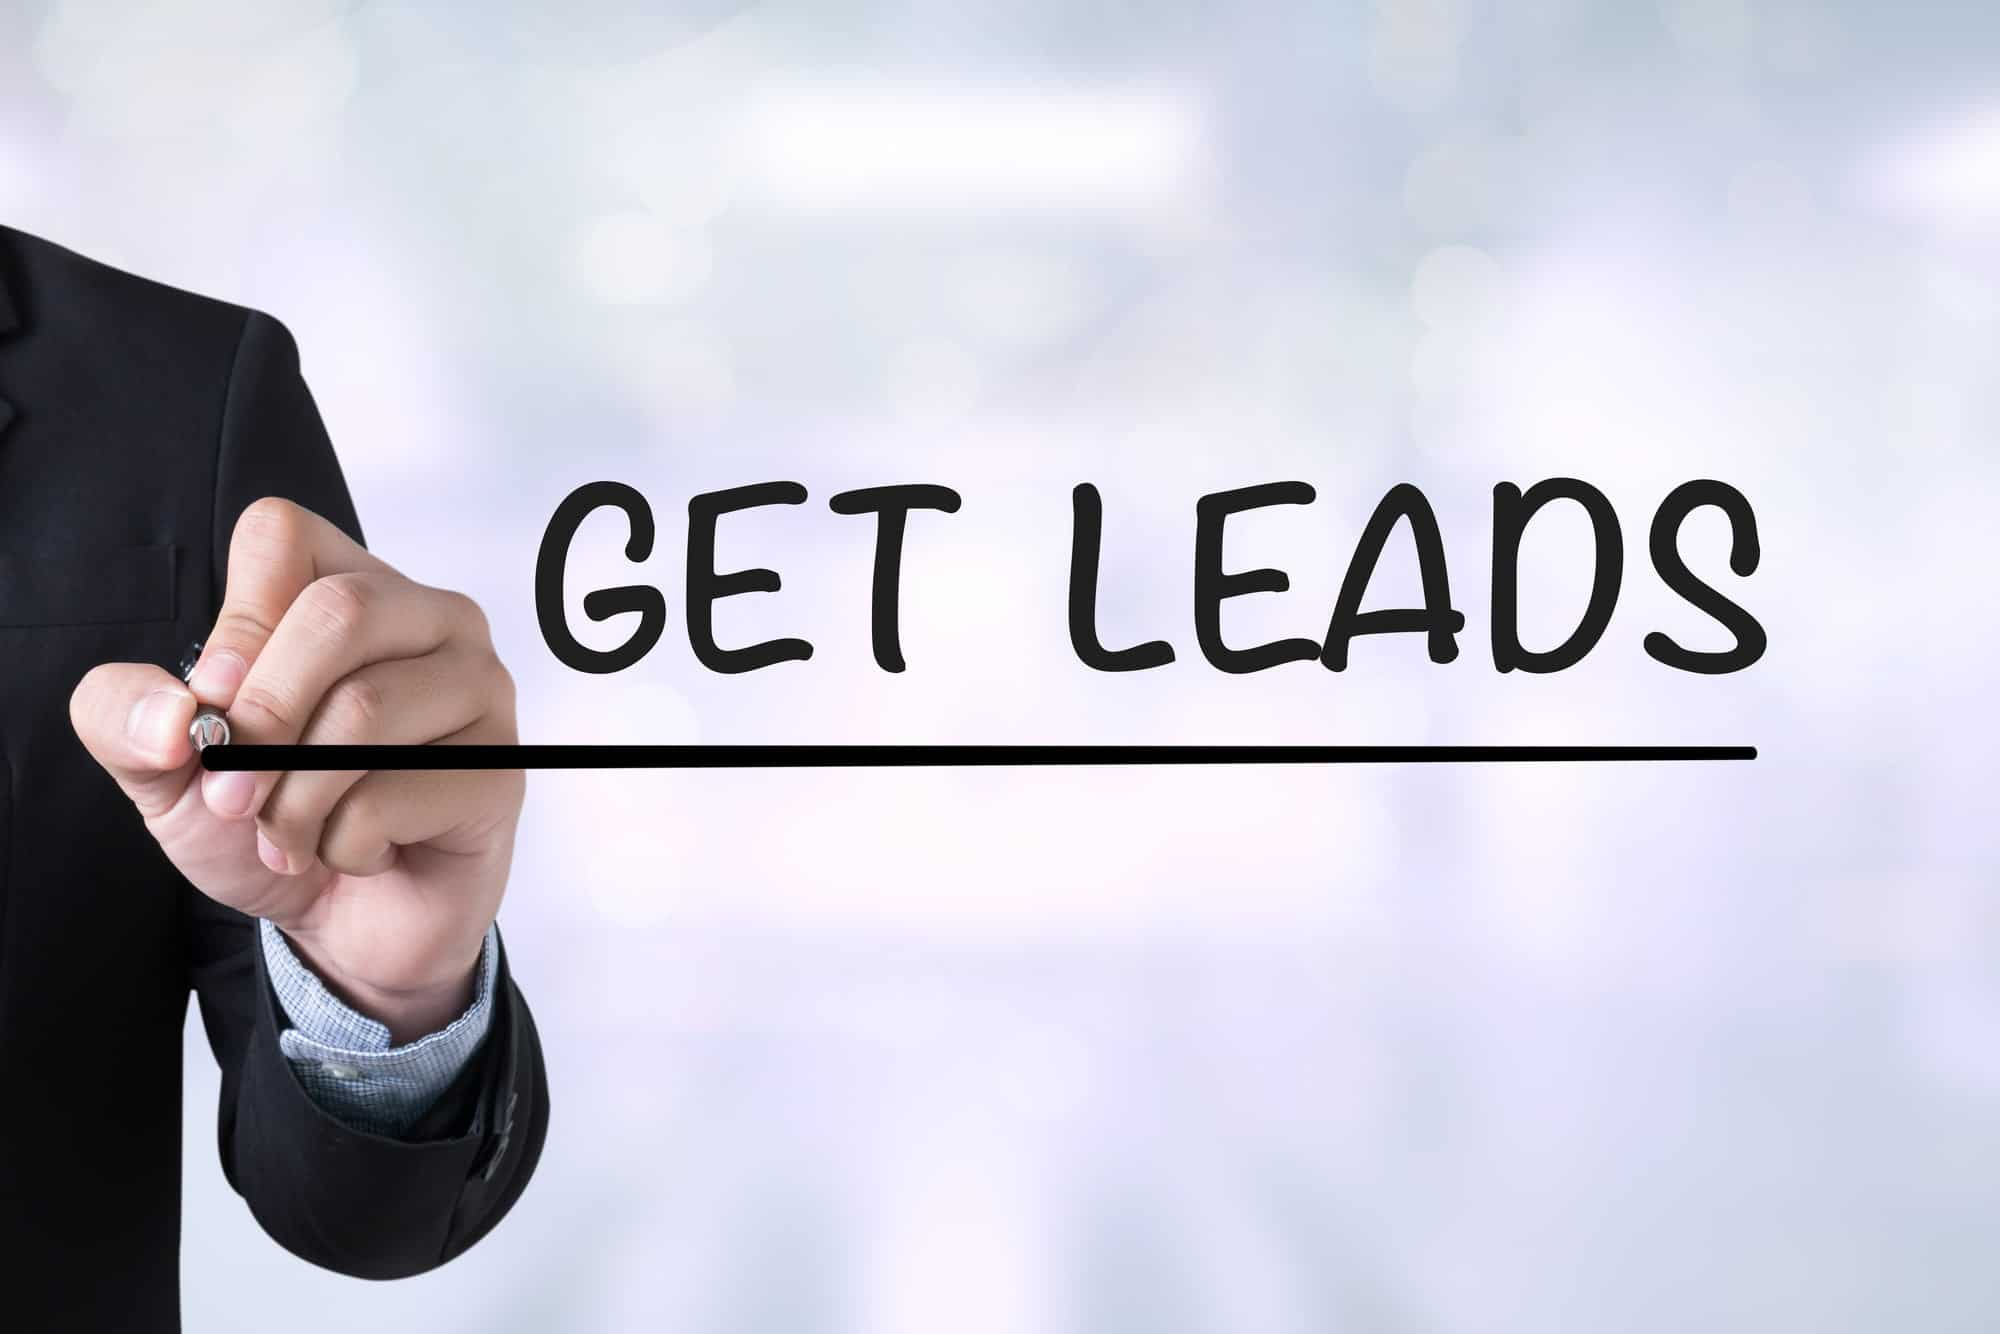 lead generation tips SEO Optimized Web Design for Law Firms   Law Firm Marketing 360